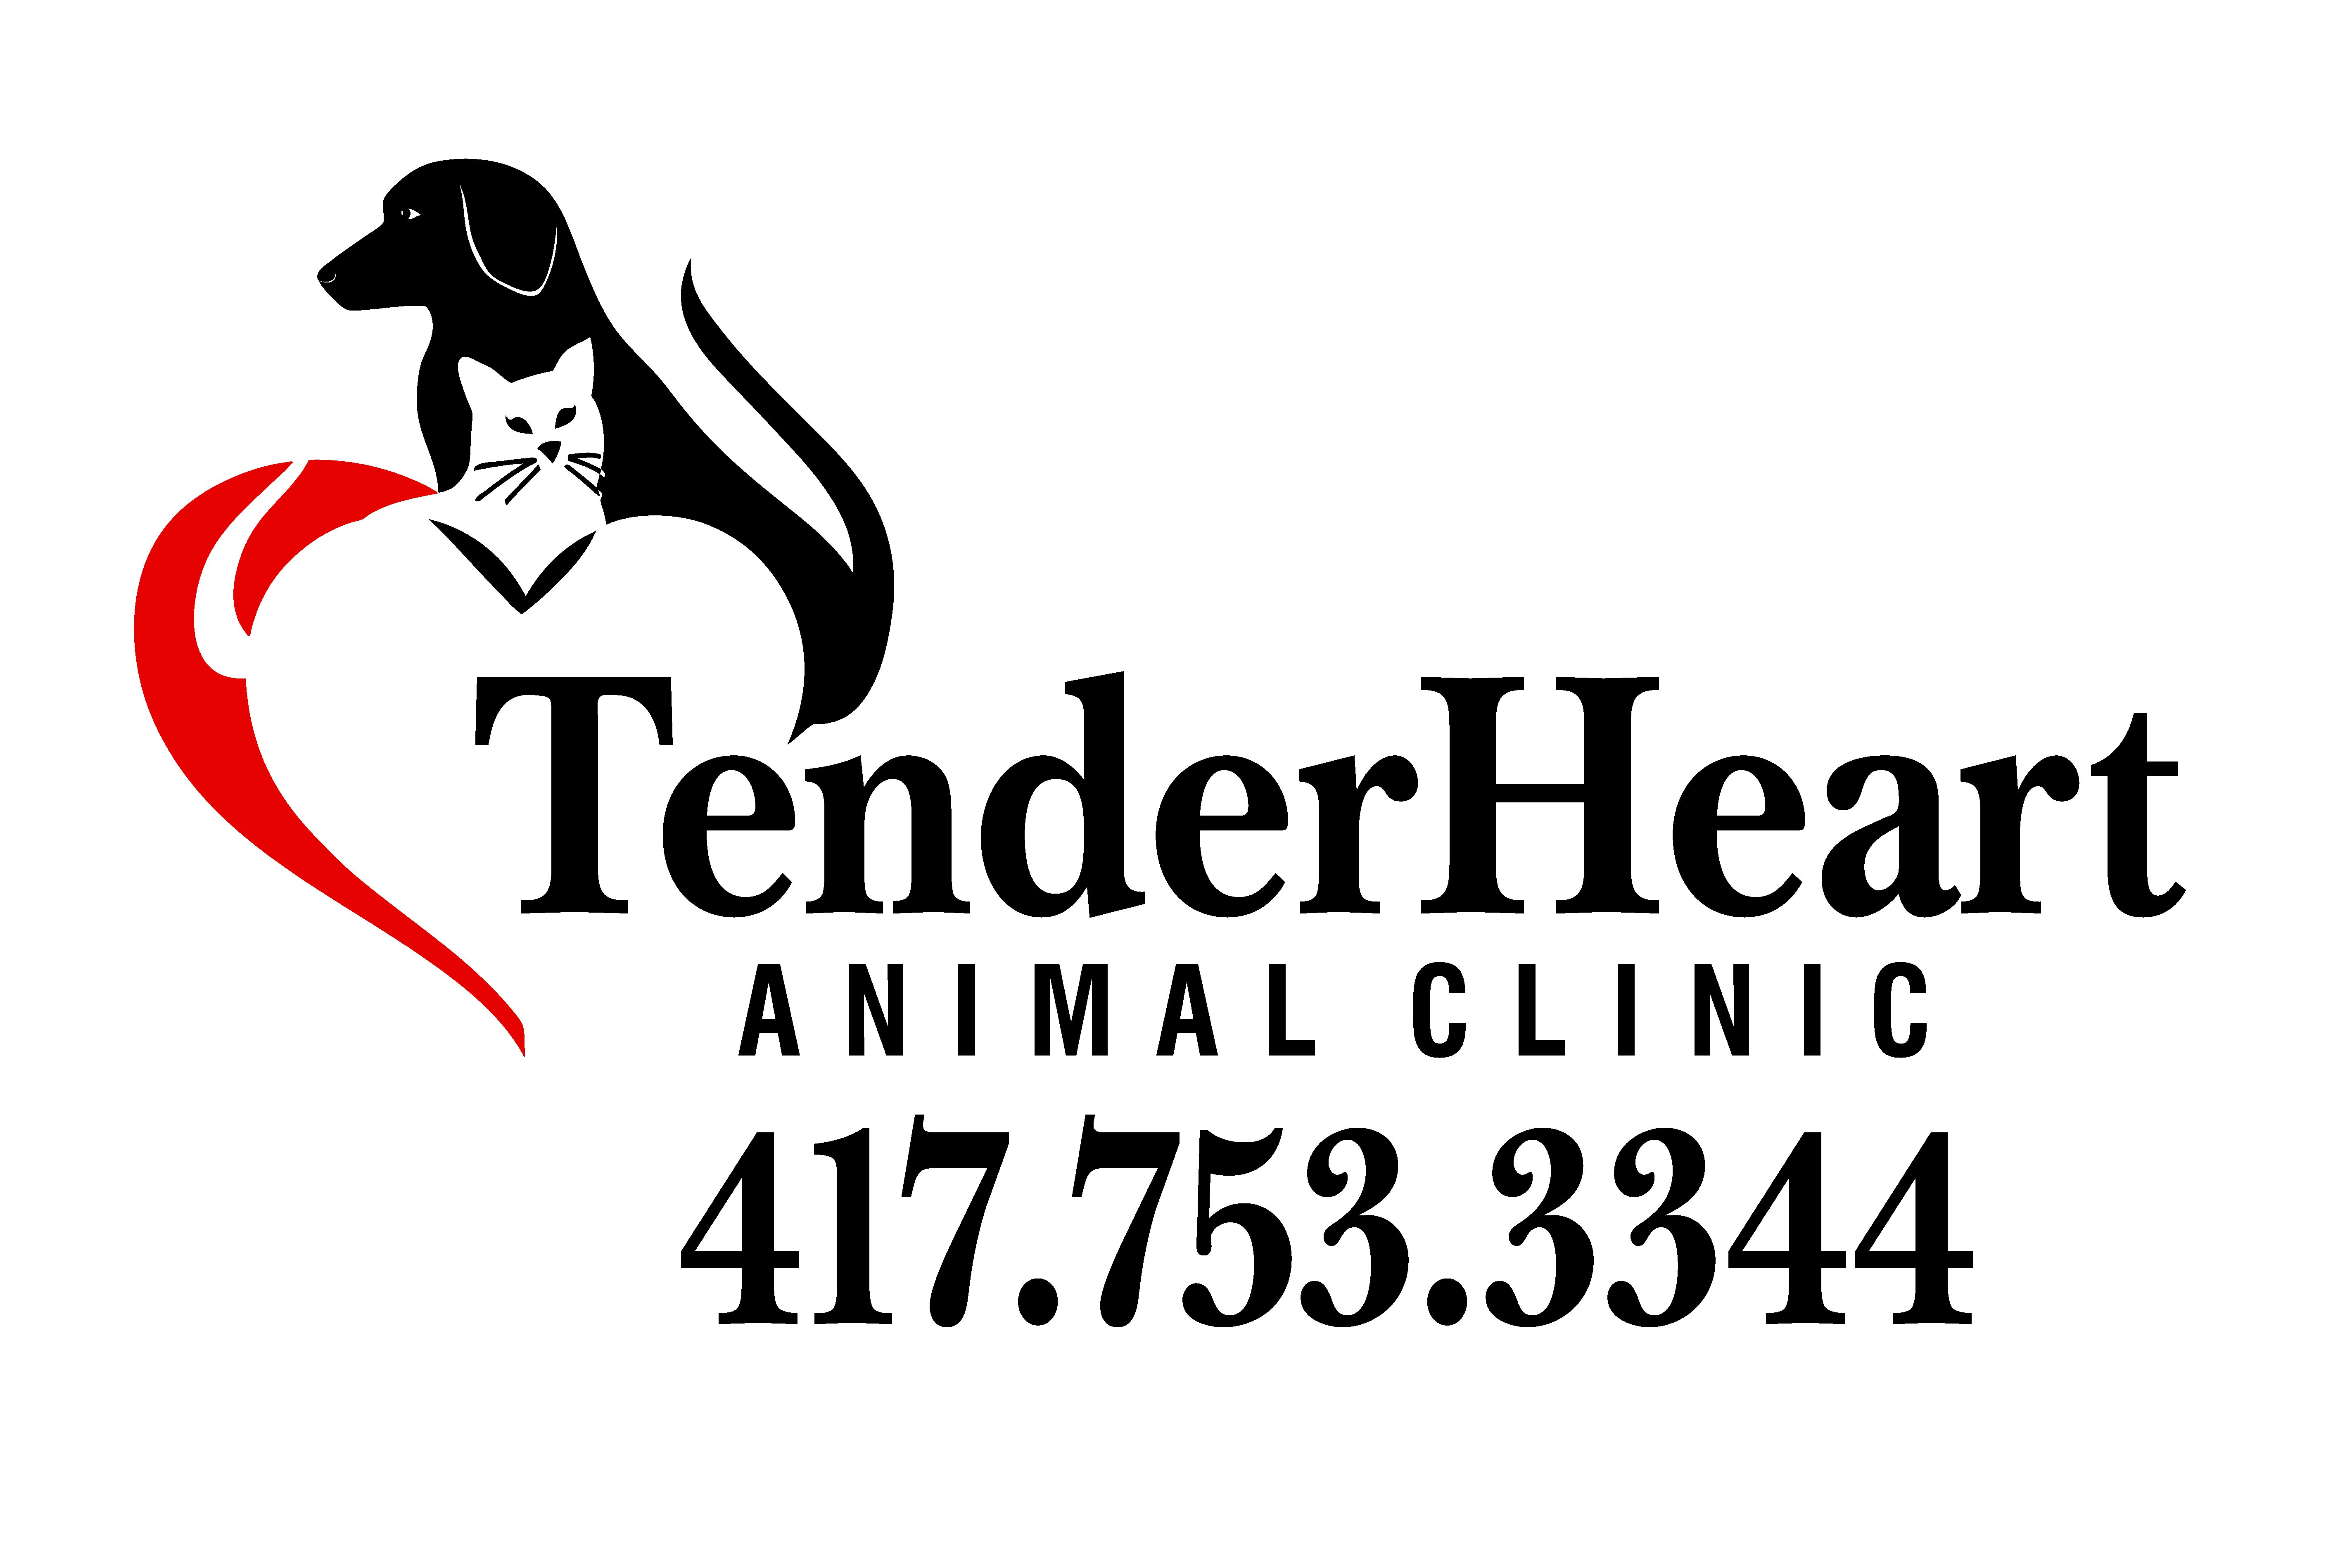 Tender Heart Animal Clinic